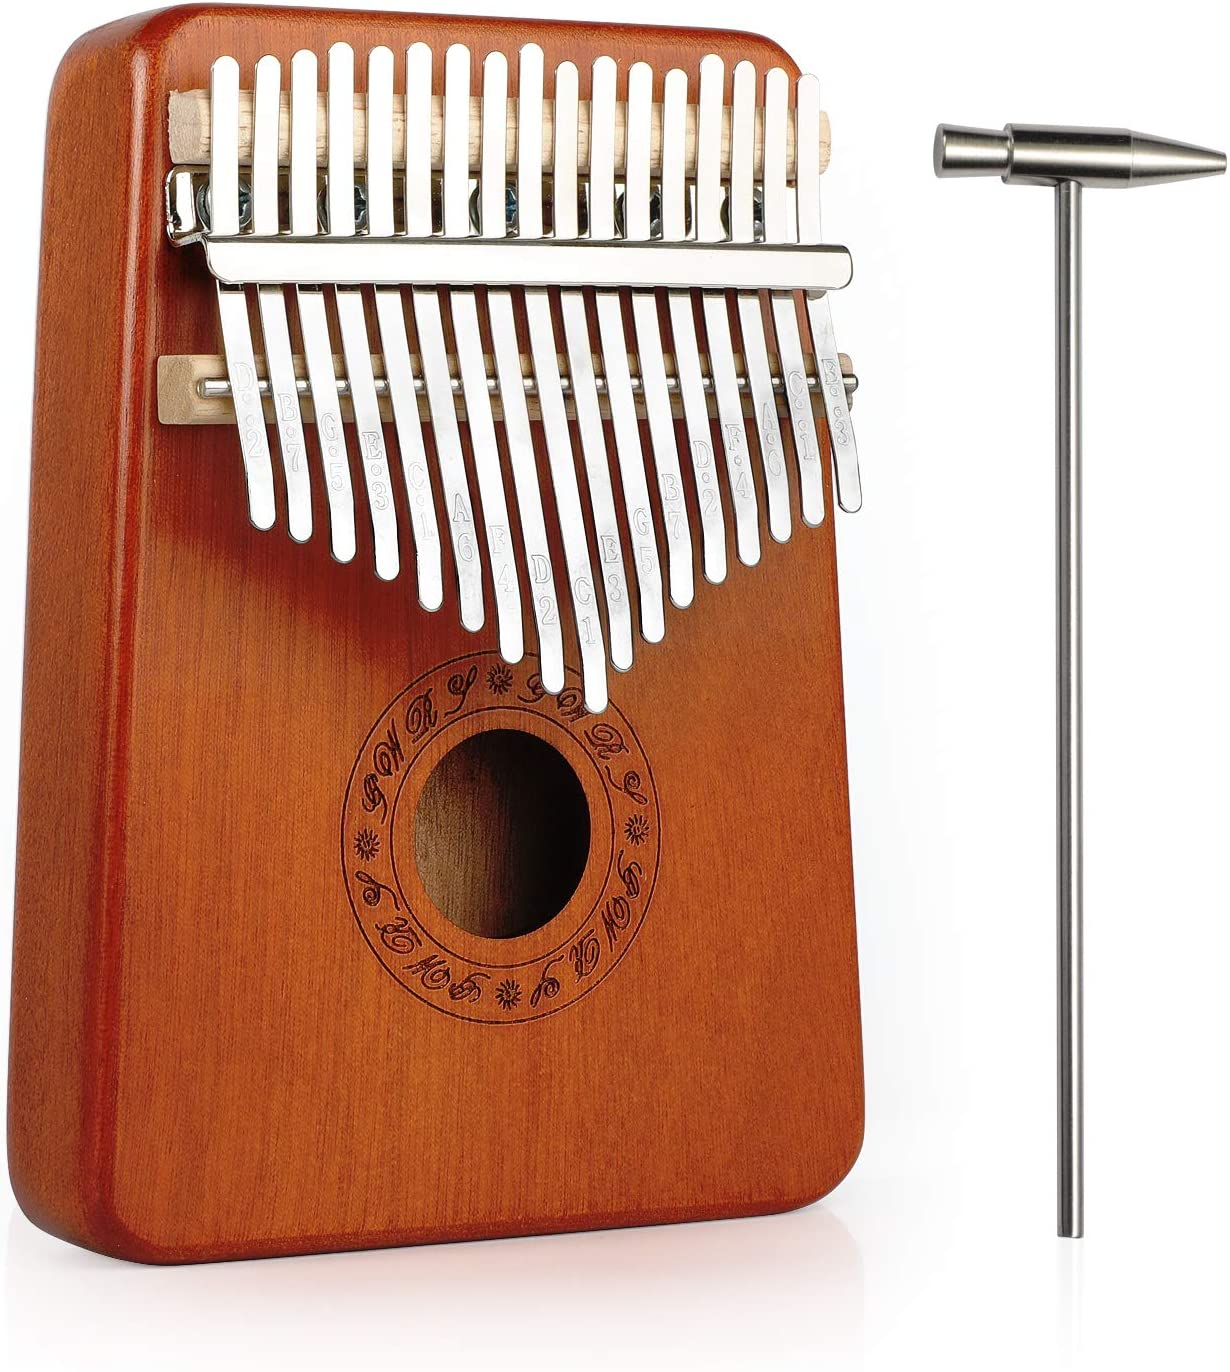 Haton Kalimba, 17 Keys Thumb Piano With Study Instruction and Tune Hammer, Portable Mbira Africa Wood Finger Piano, Easy to Learn Music Instrument Gift for Kids Adult Beginners Professional